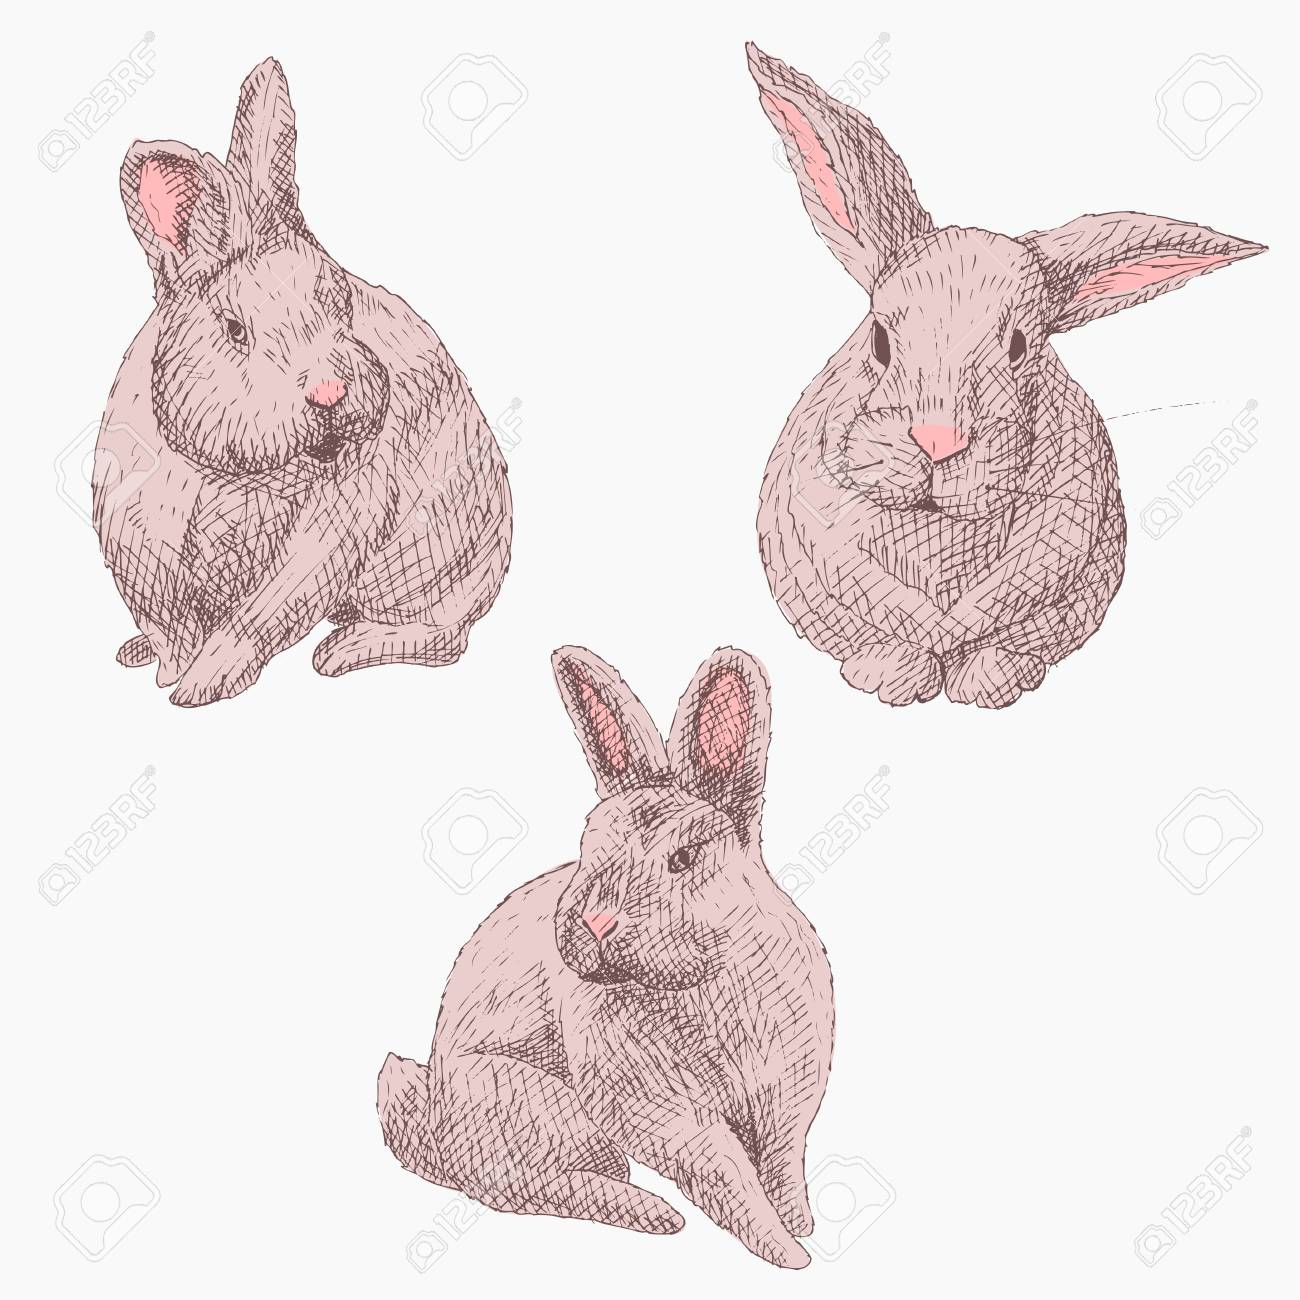 Set of rabbits hand drawn pencil sketch stock vector 97321279